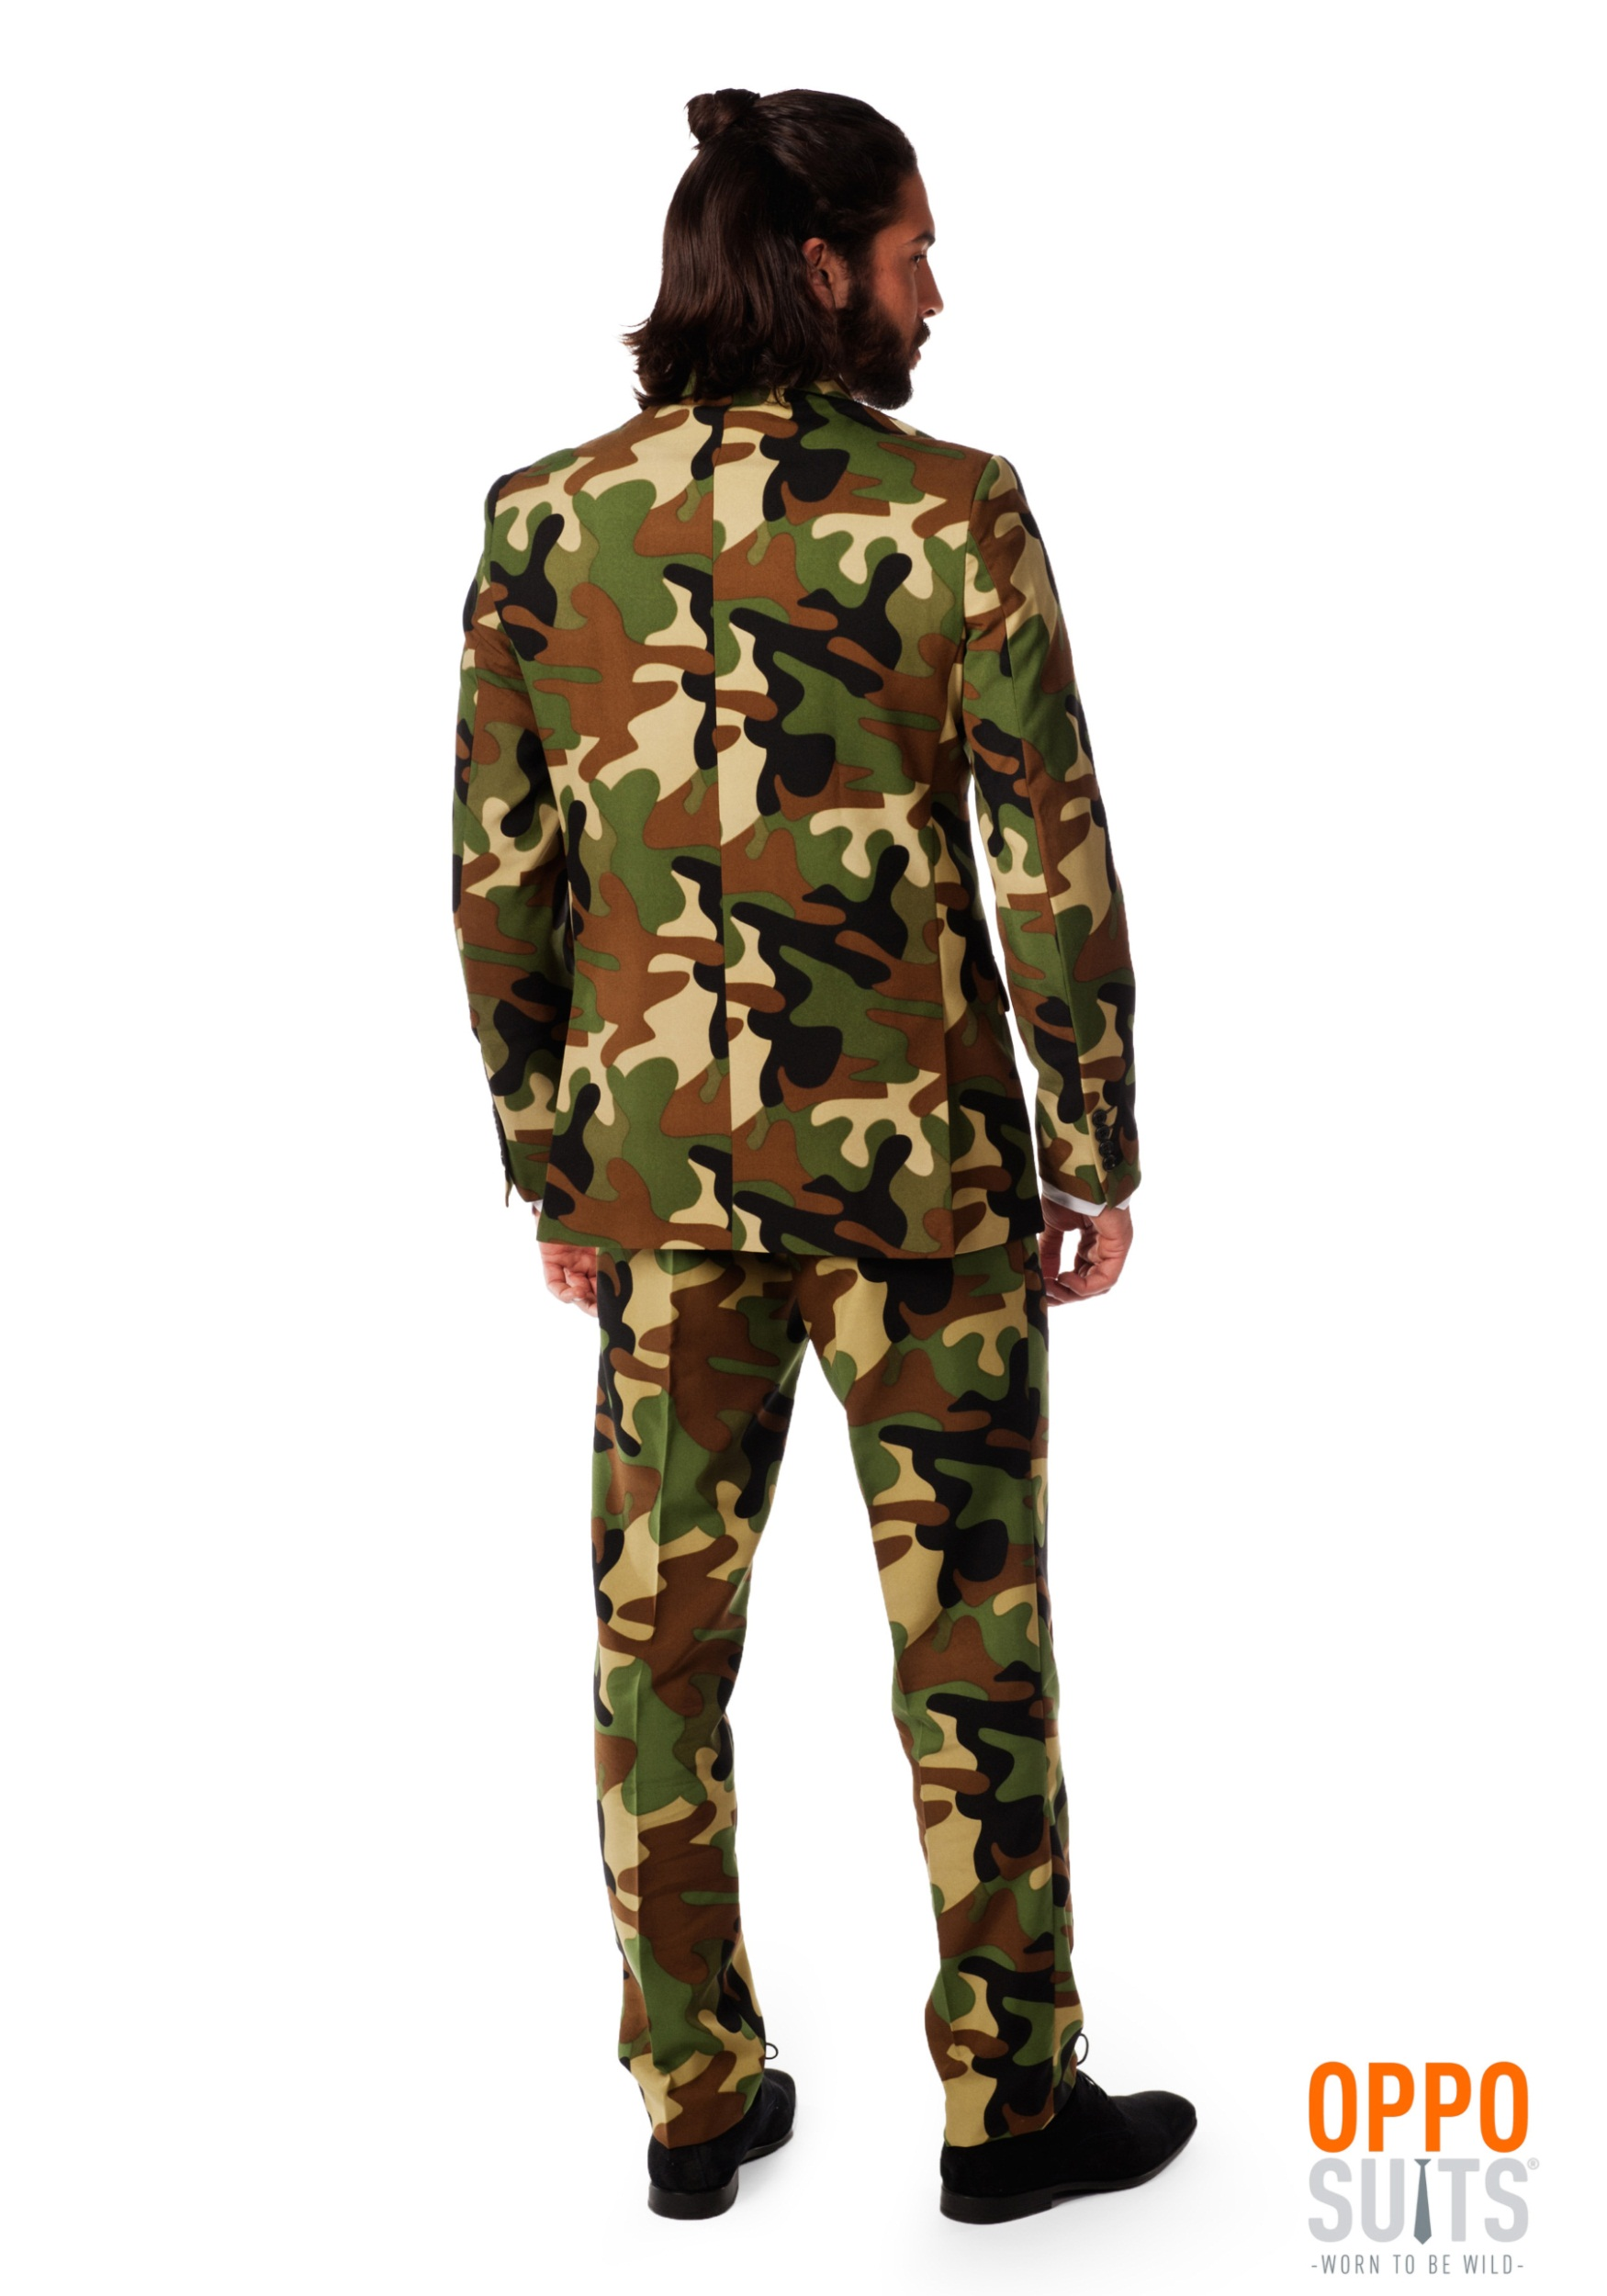 Online shopping for popular & hot Camouflage Suit Jacket from Men's Clothing & Accessories, Suit Jackets, Blazers, Jackets and more related Camouflage Suit Jacket like camo jacket suits, camo suit coat, army suit jacket, camouflage jacket pants. Discover over of the best Selection Camouflage Suit Jacket on sisk-profi.ga